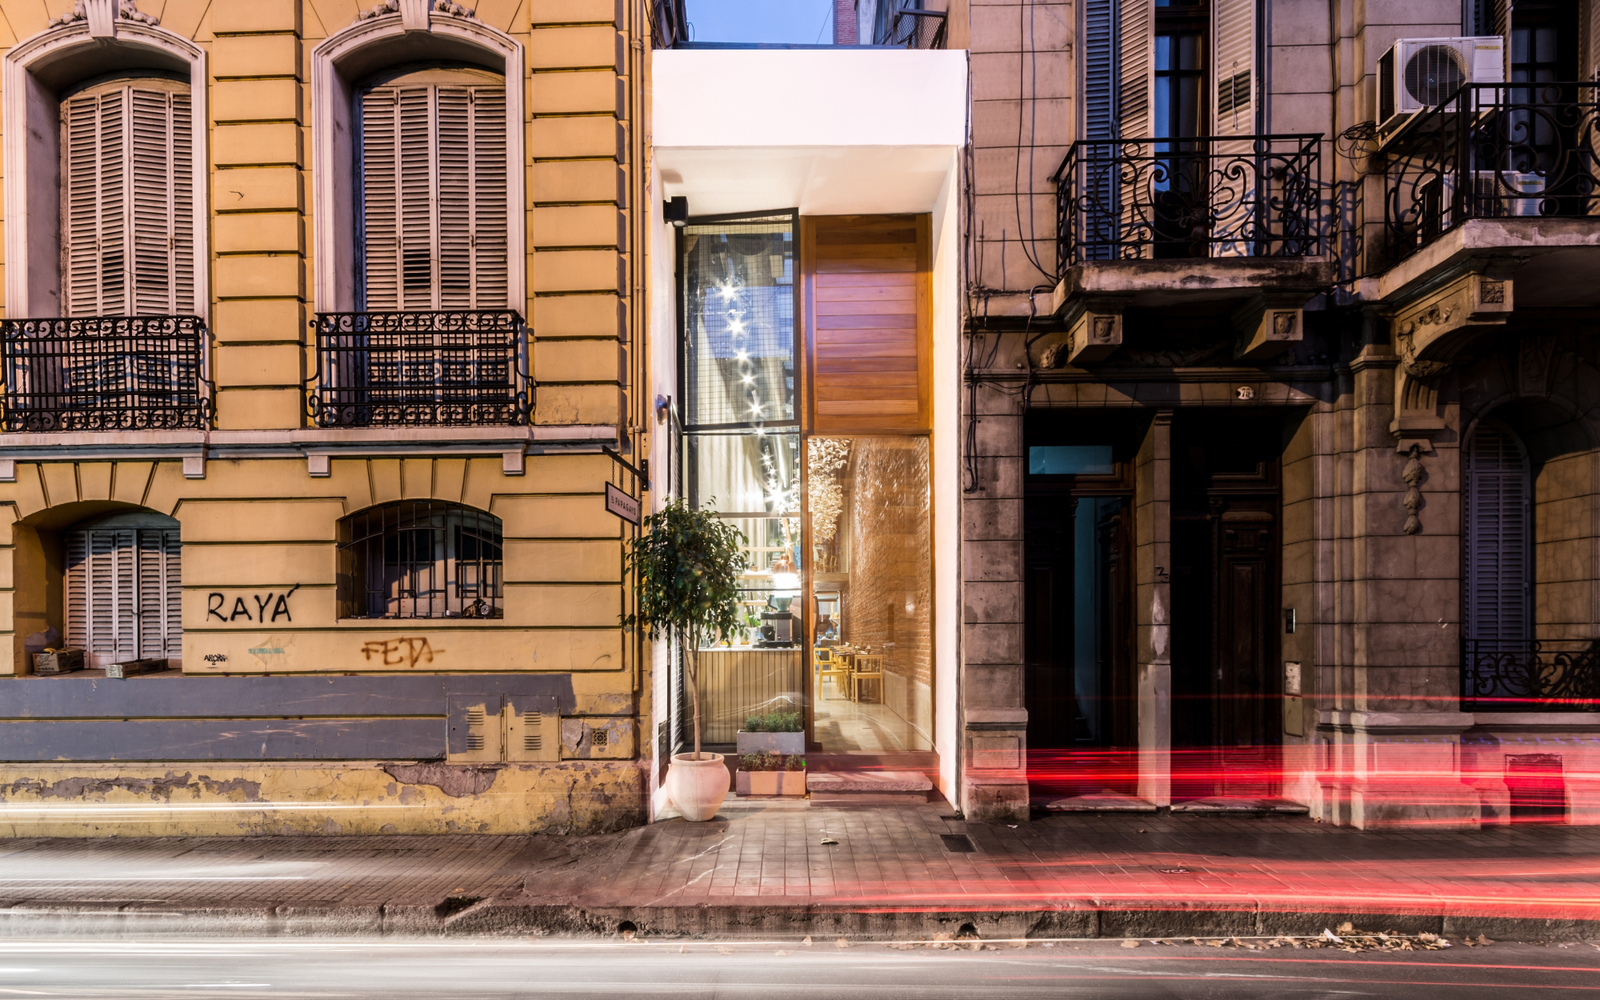 Is This the World's Narrowest Restaurant?